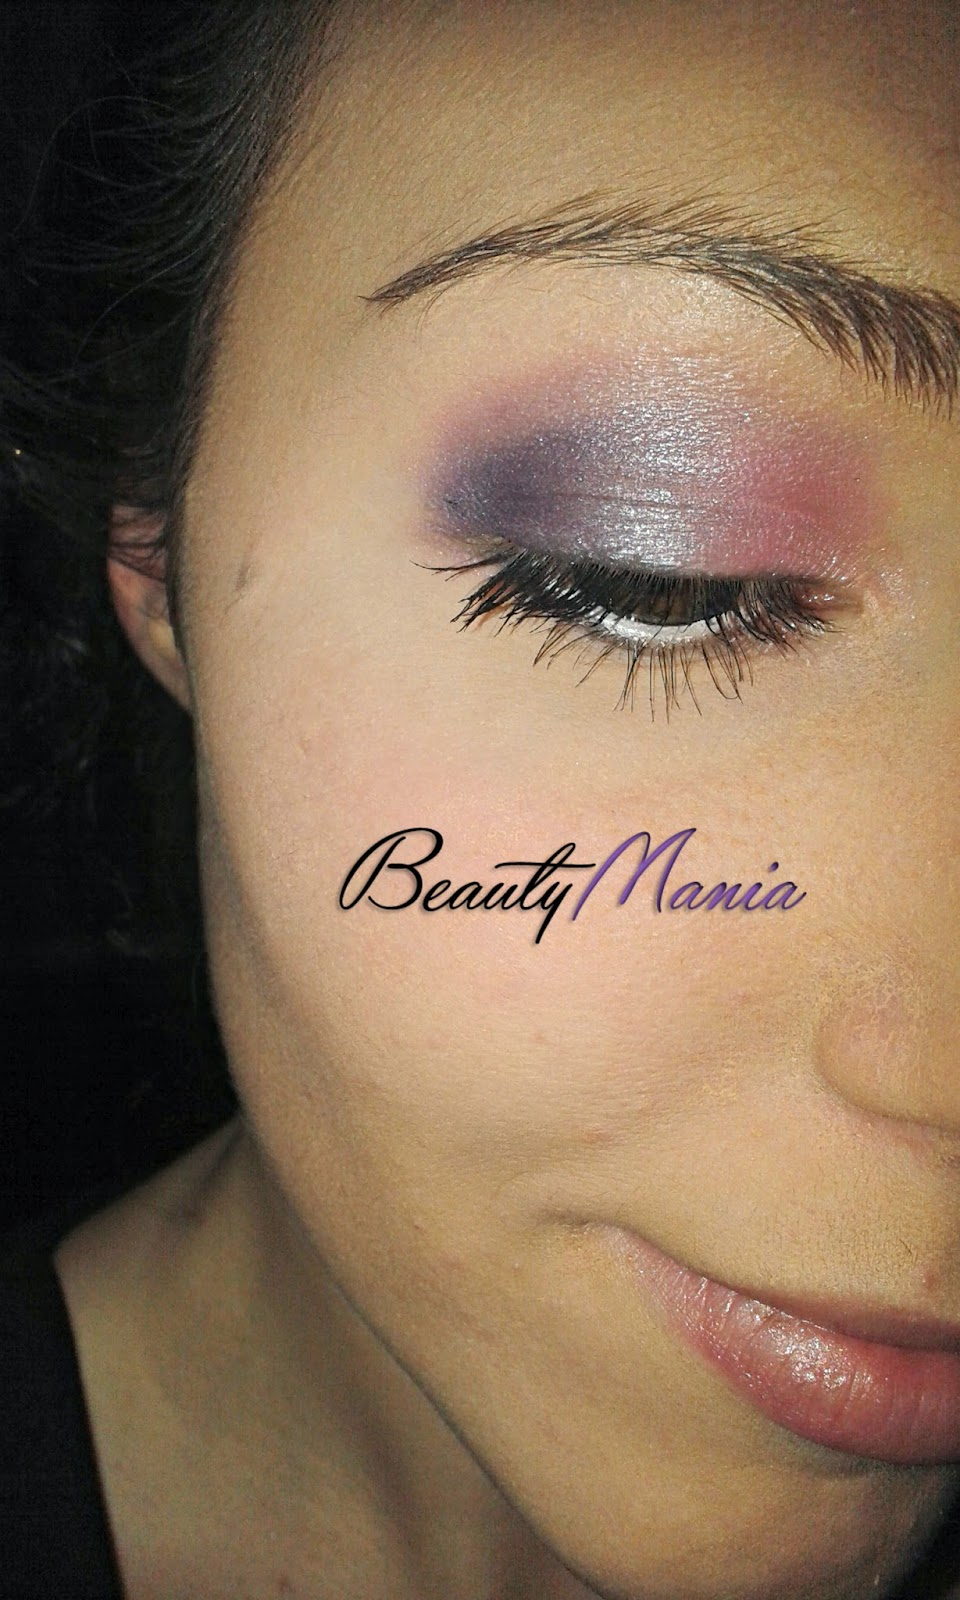 beautymania blog